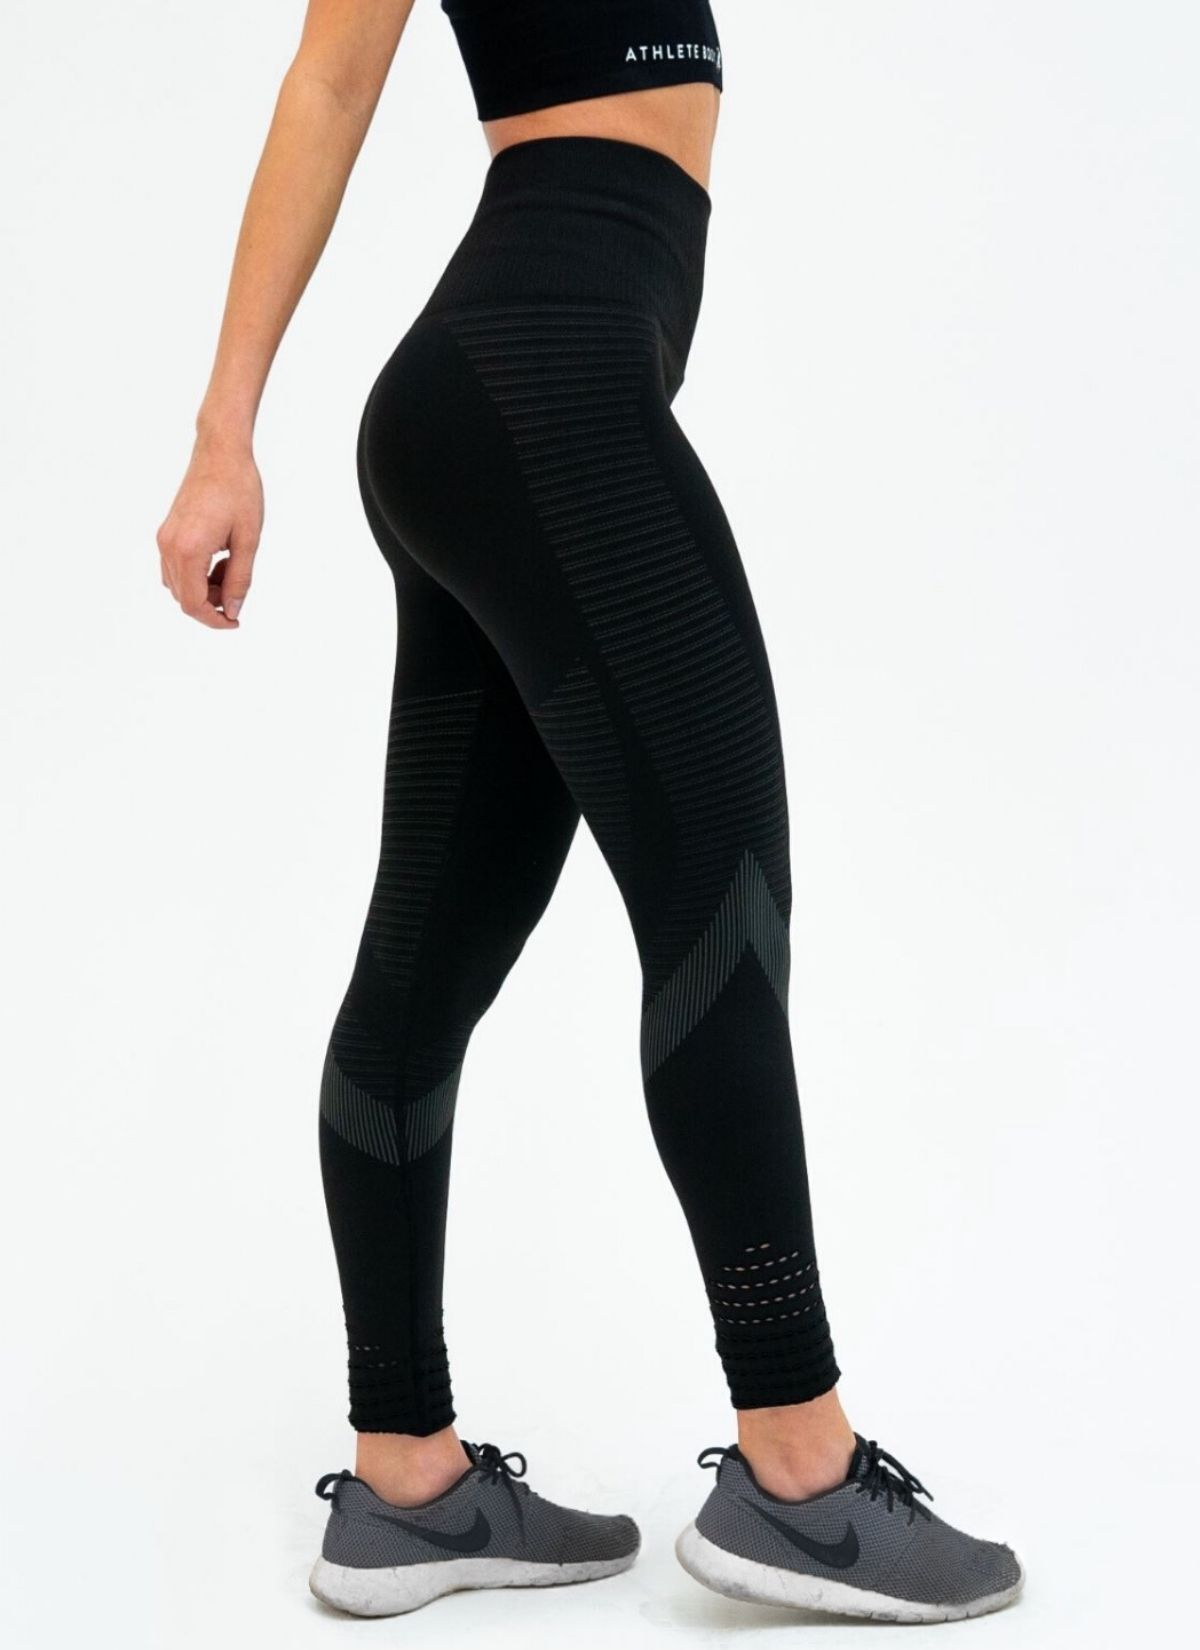 Feel Seamless Black Leggings - Athlete Body